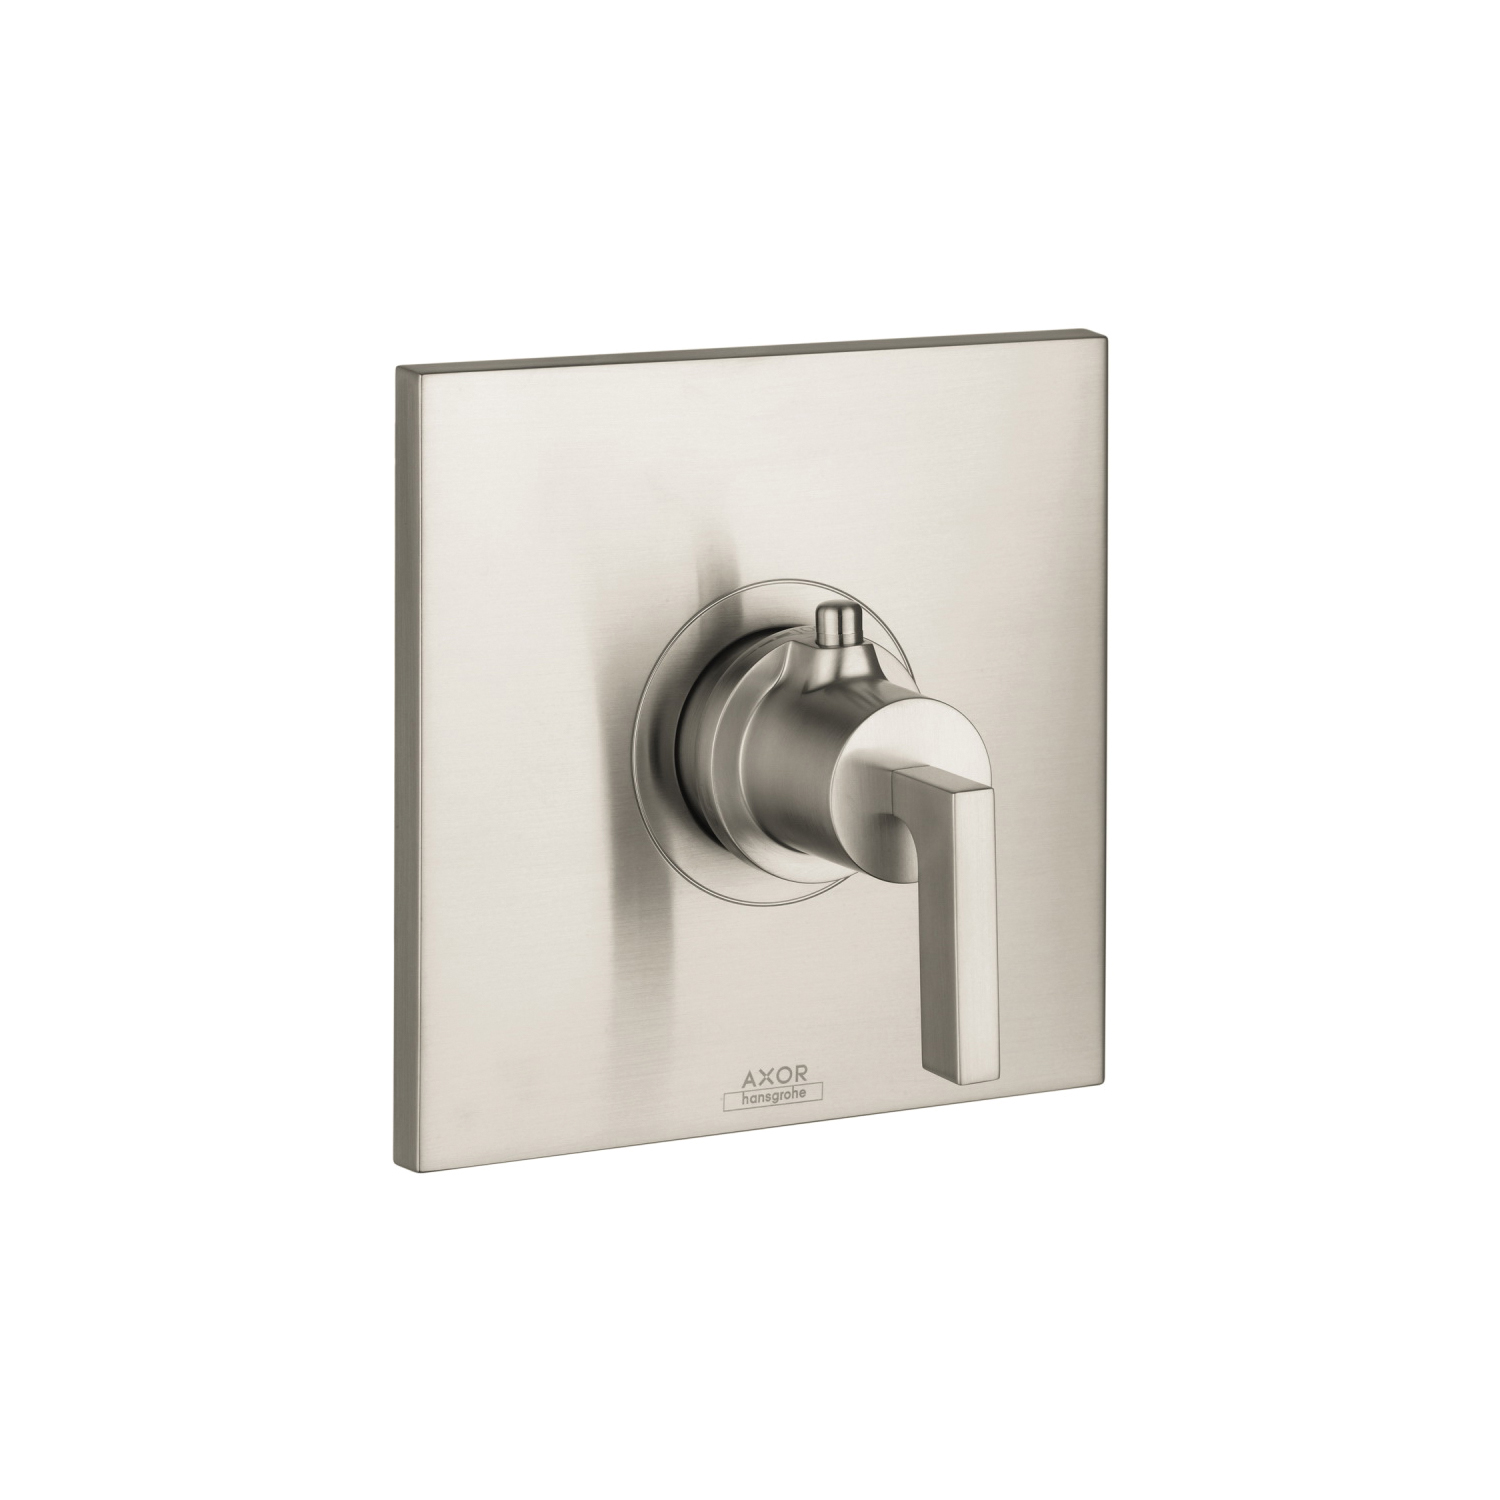 Hansgrohe 39711821 Axor Citterio High Flow Thermostatic Trim, Hand Shower Yes/No: No, Brushed Nickel